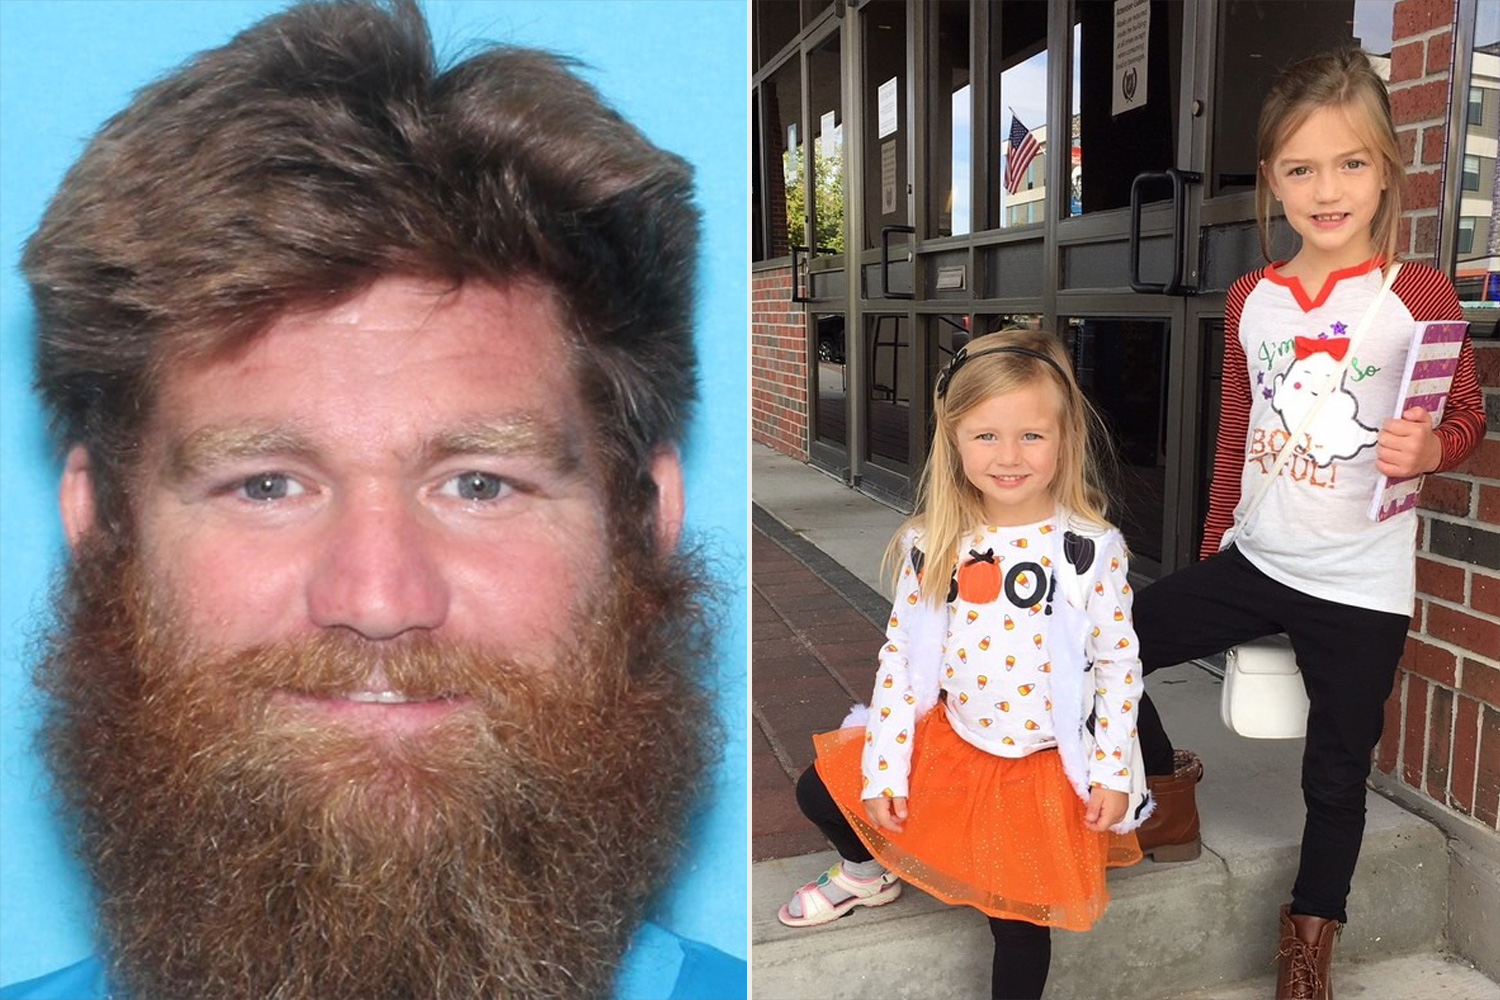 Donny Jackson, 40, and his daughters Nora Jackson, age 7, and Aven Jackson, age 3